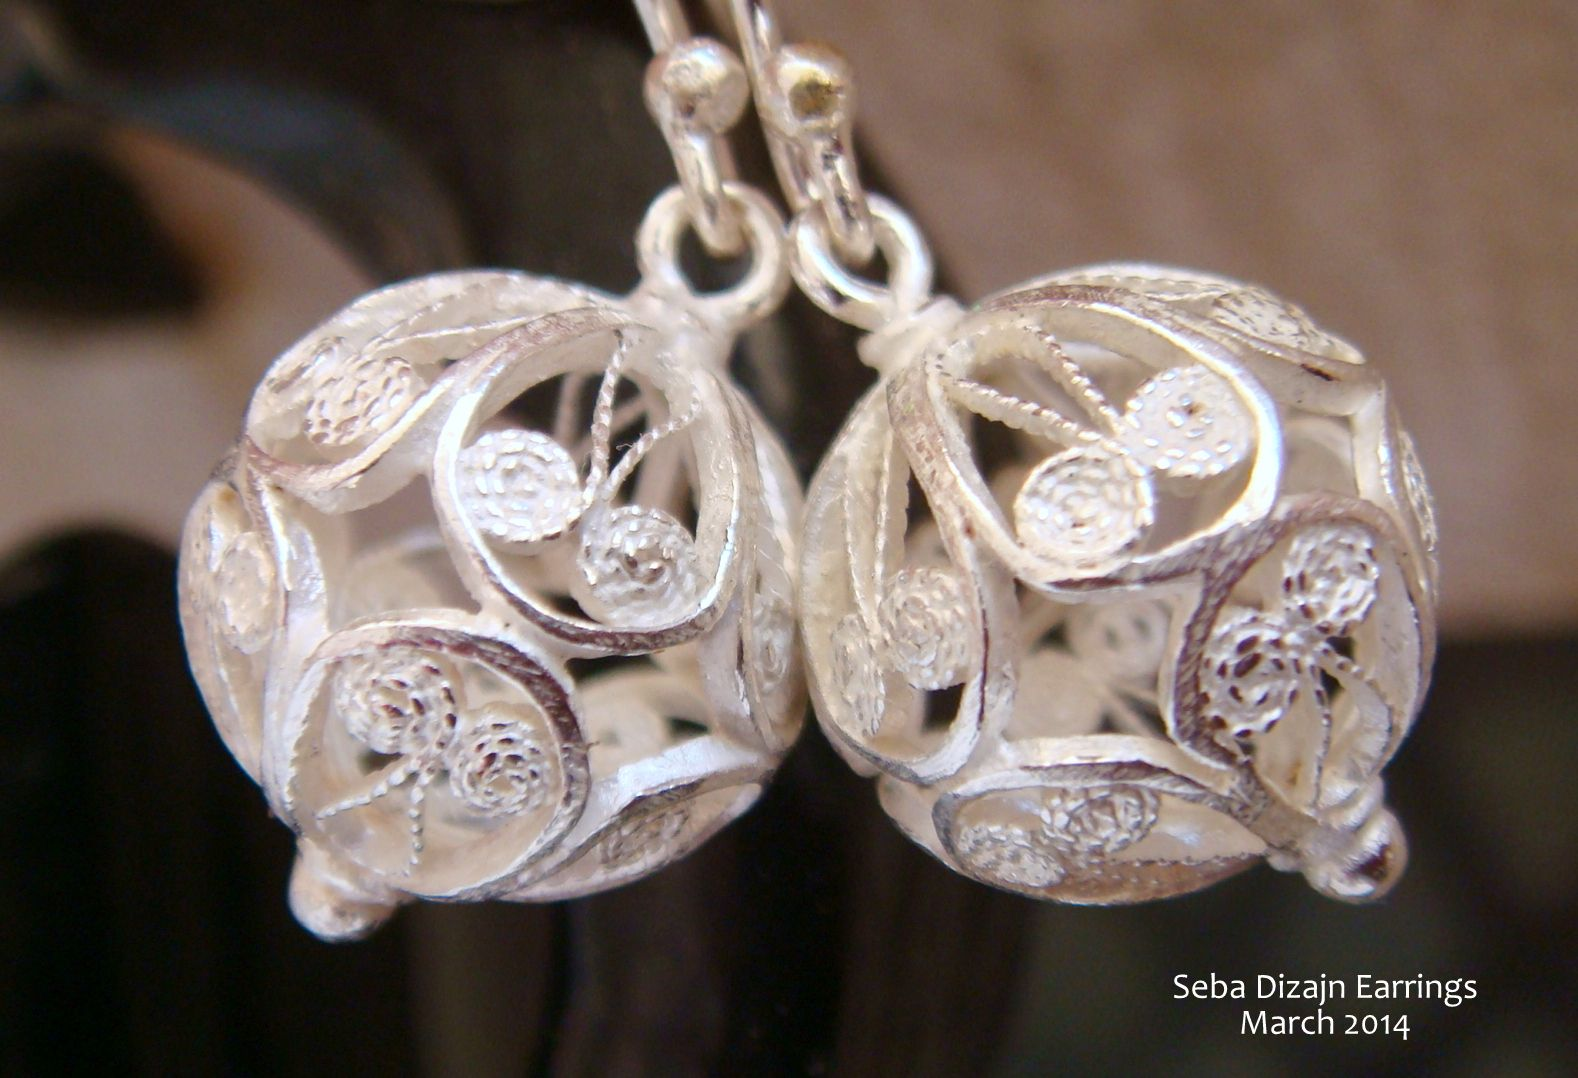 Another pair of classic handmade filigree earrings from our 2014 collection.